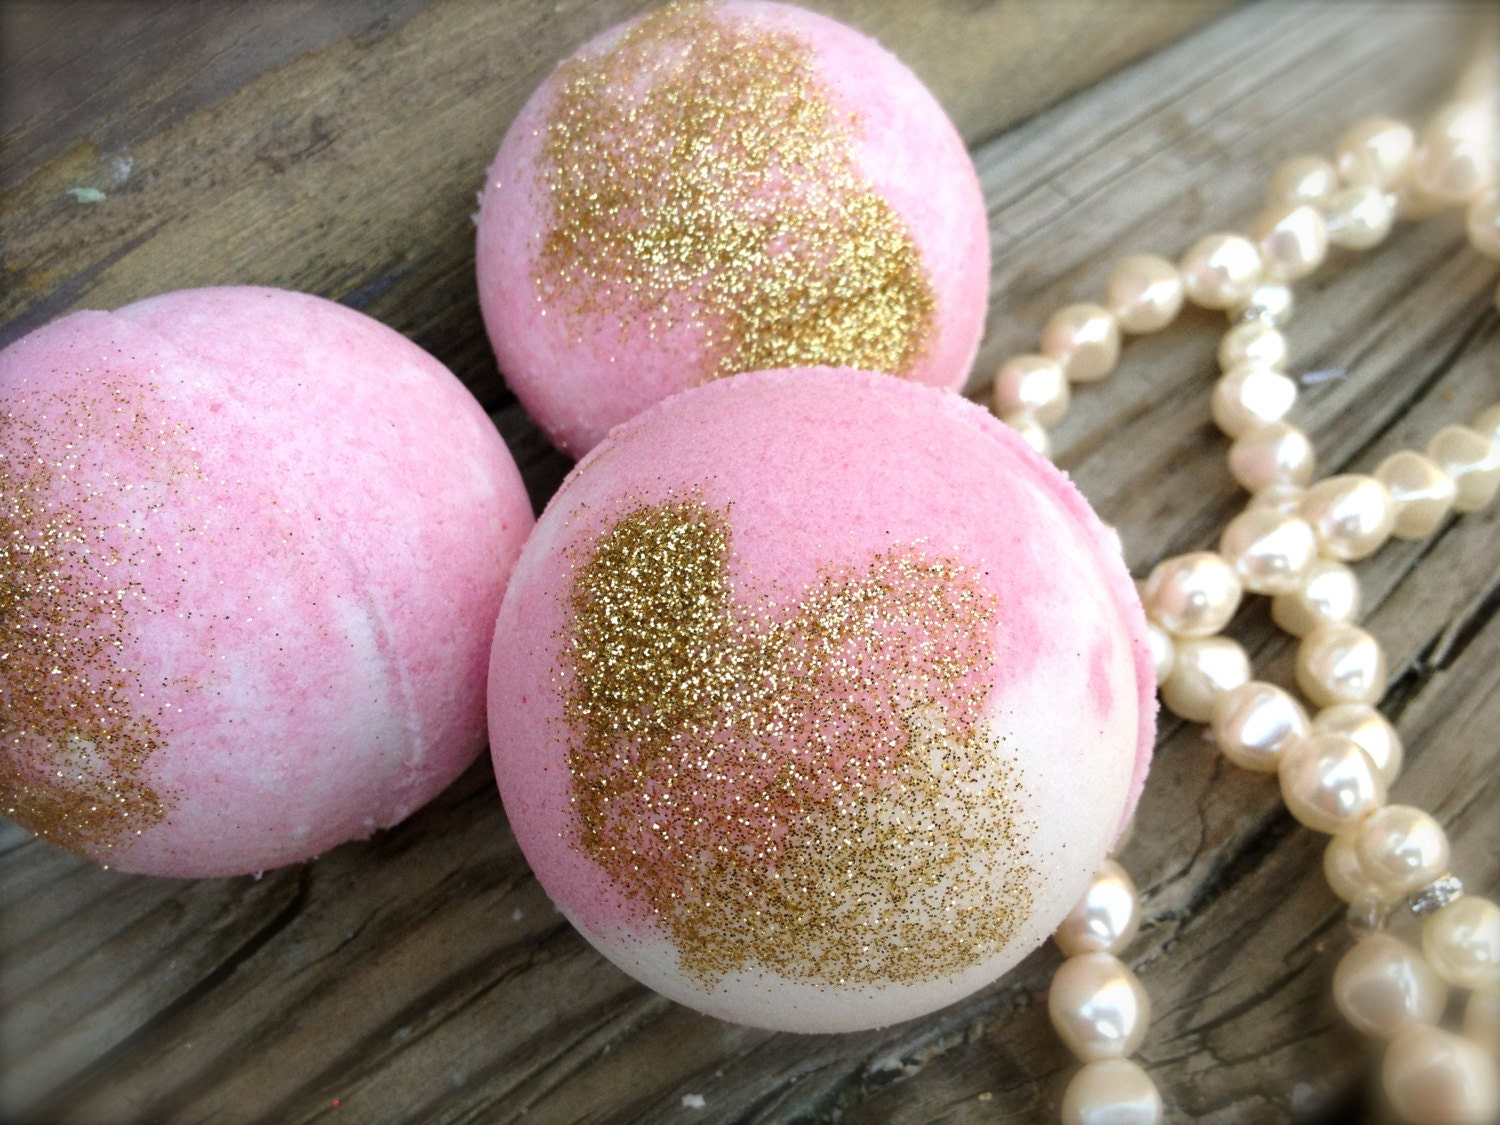 Sons Girlfriend Birthday Gift Daughter In Law Bath Bombs Pampering For HER Set Of 3 Fizzies Sweet Pink Sugar